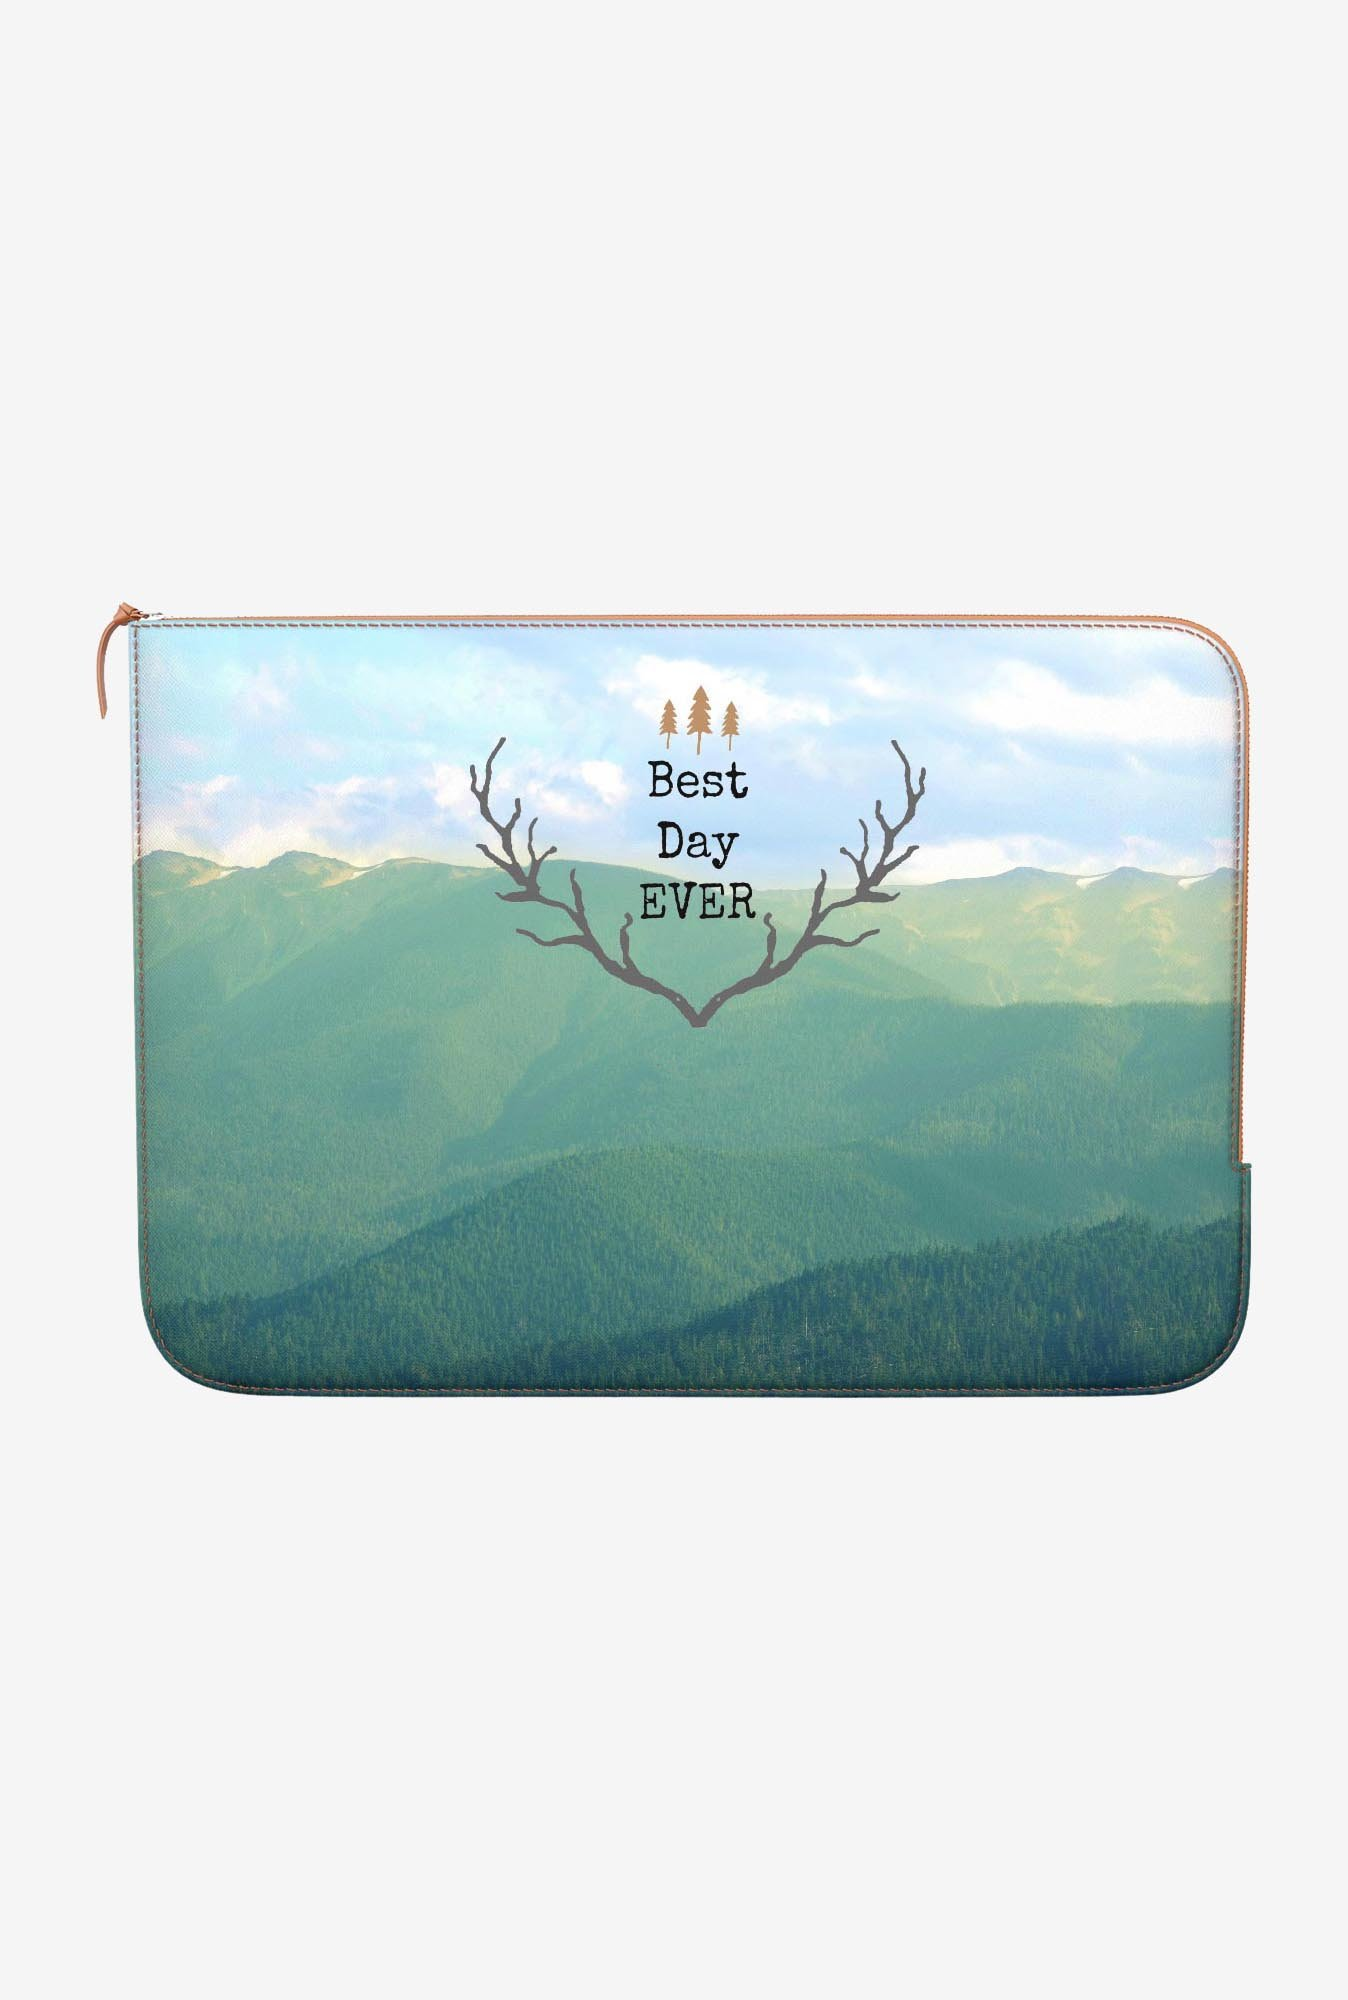 DailyObjects Best Day Ever MacBook Pro 13 Zippered Sleeve